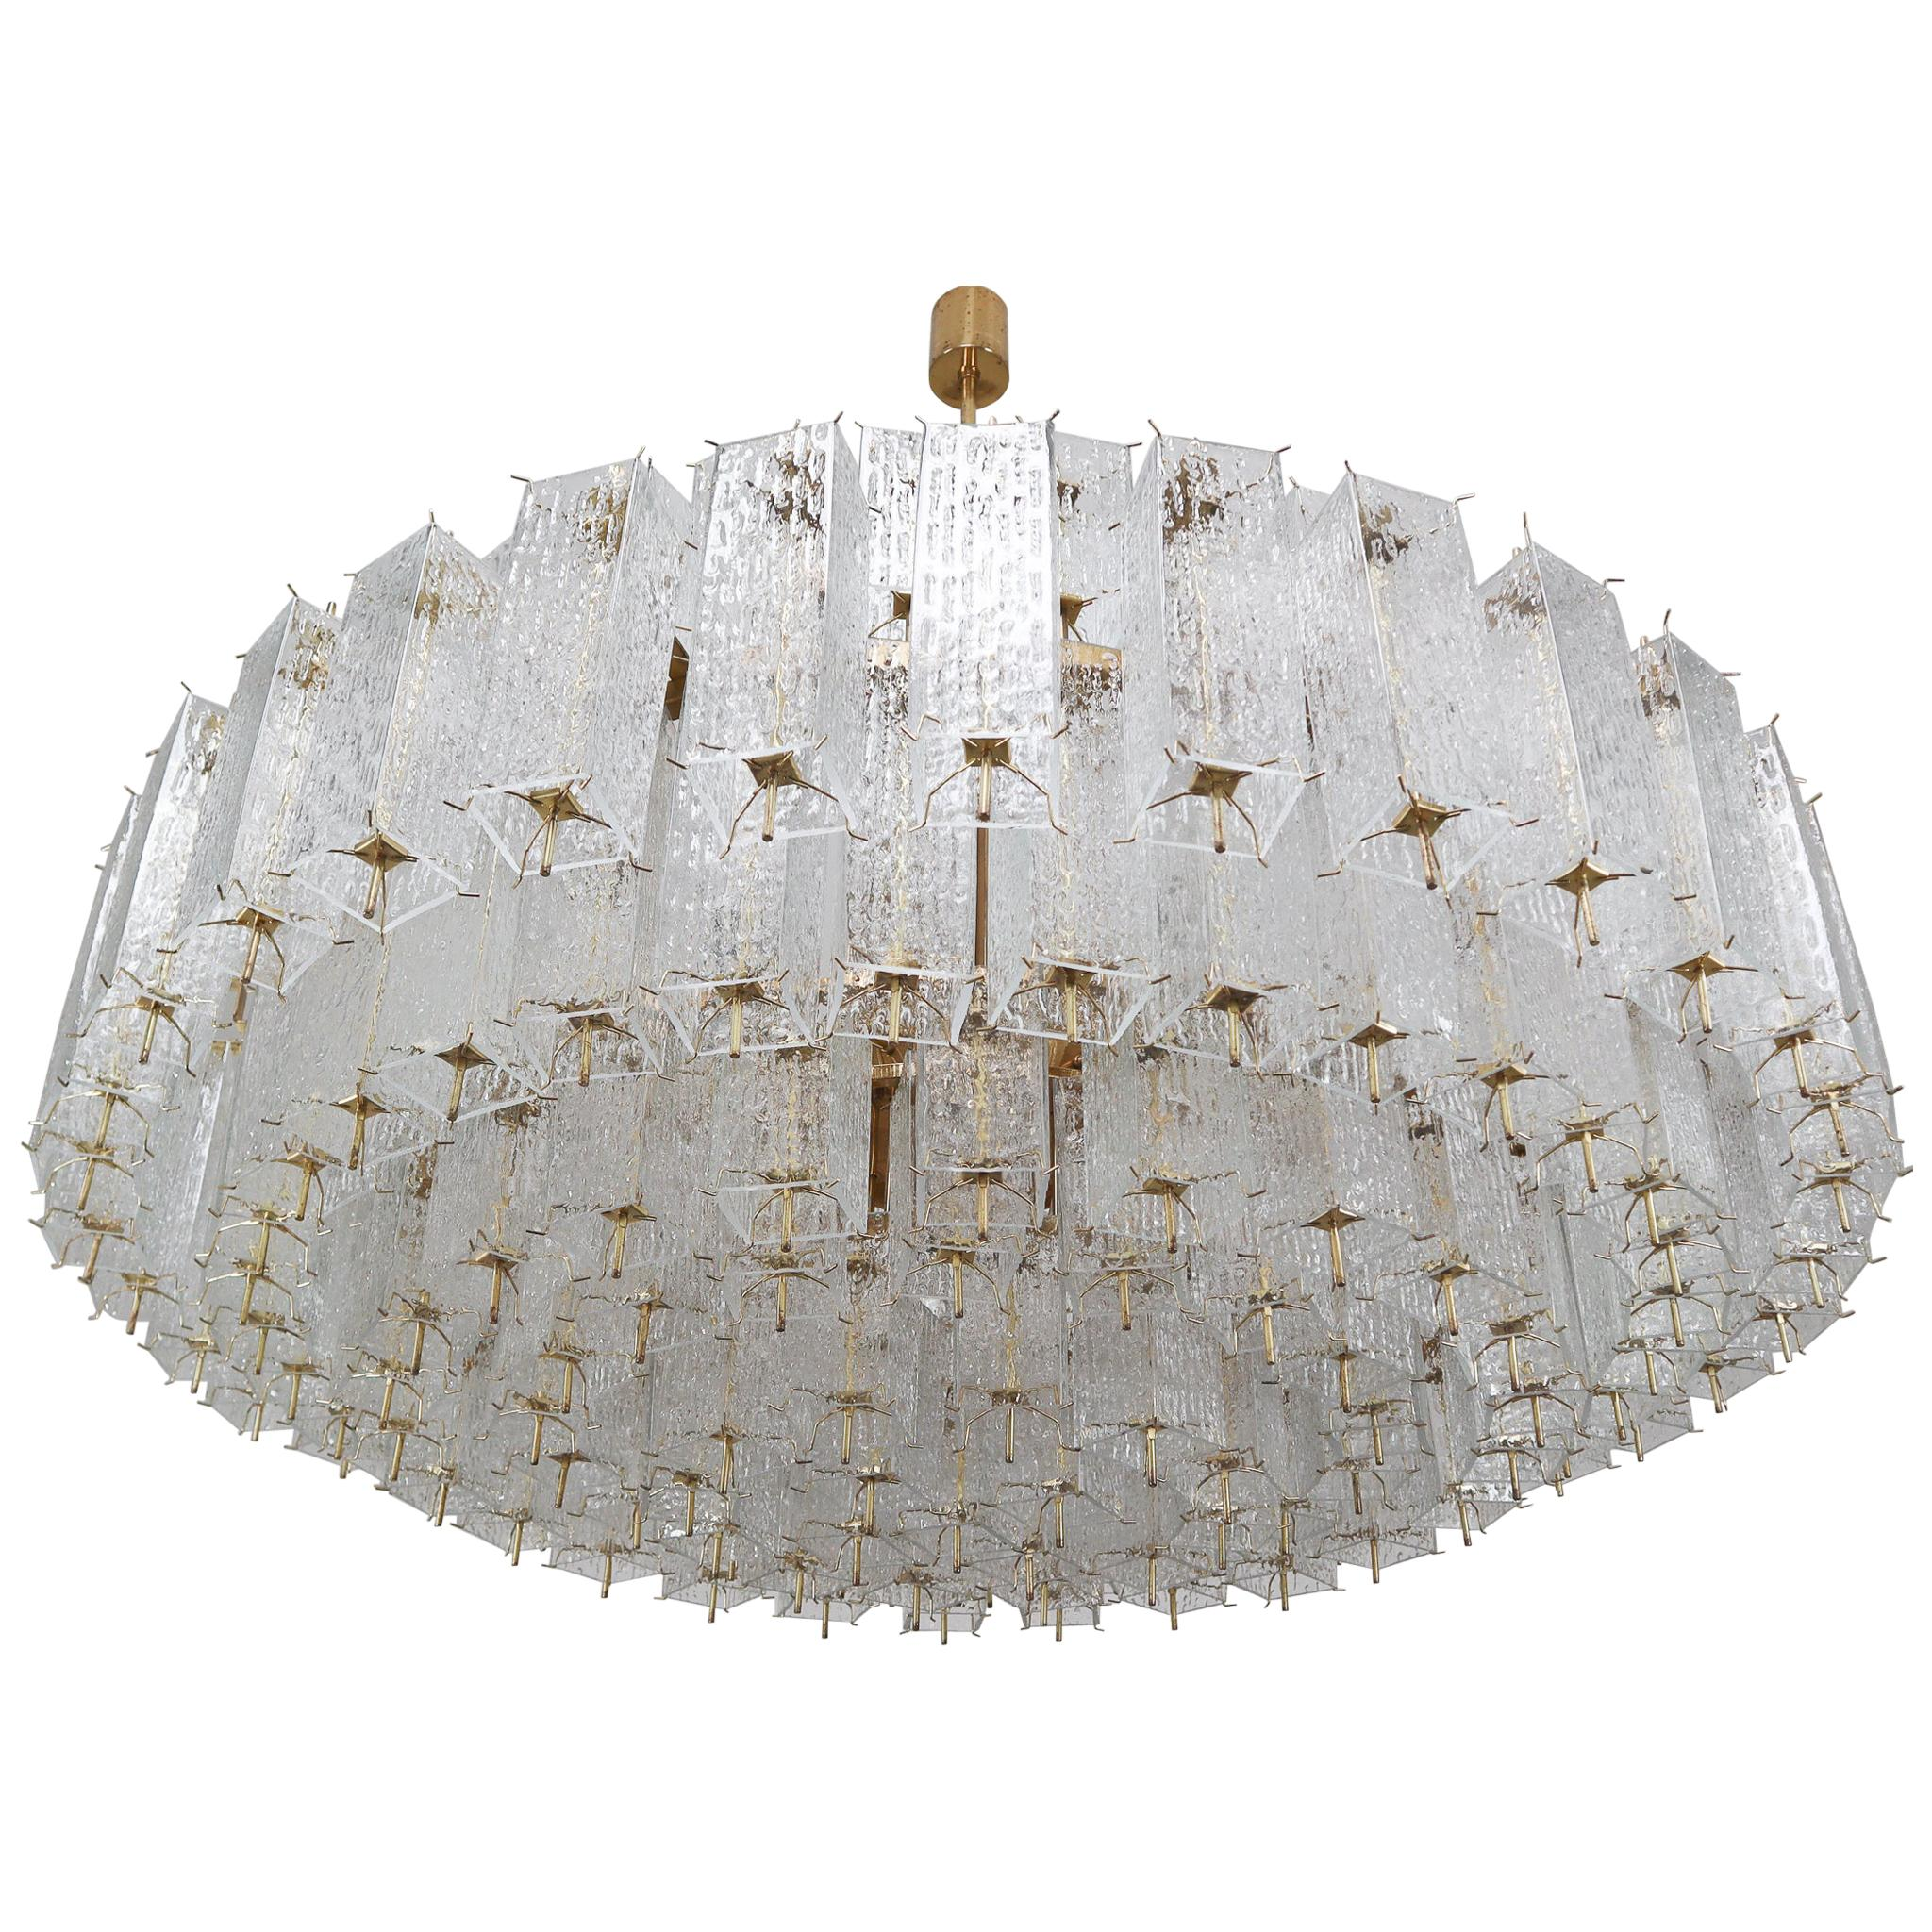 Extreme Extra Large Midcentury Brass Chandelier in Structured Glass from Europe